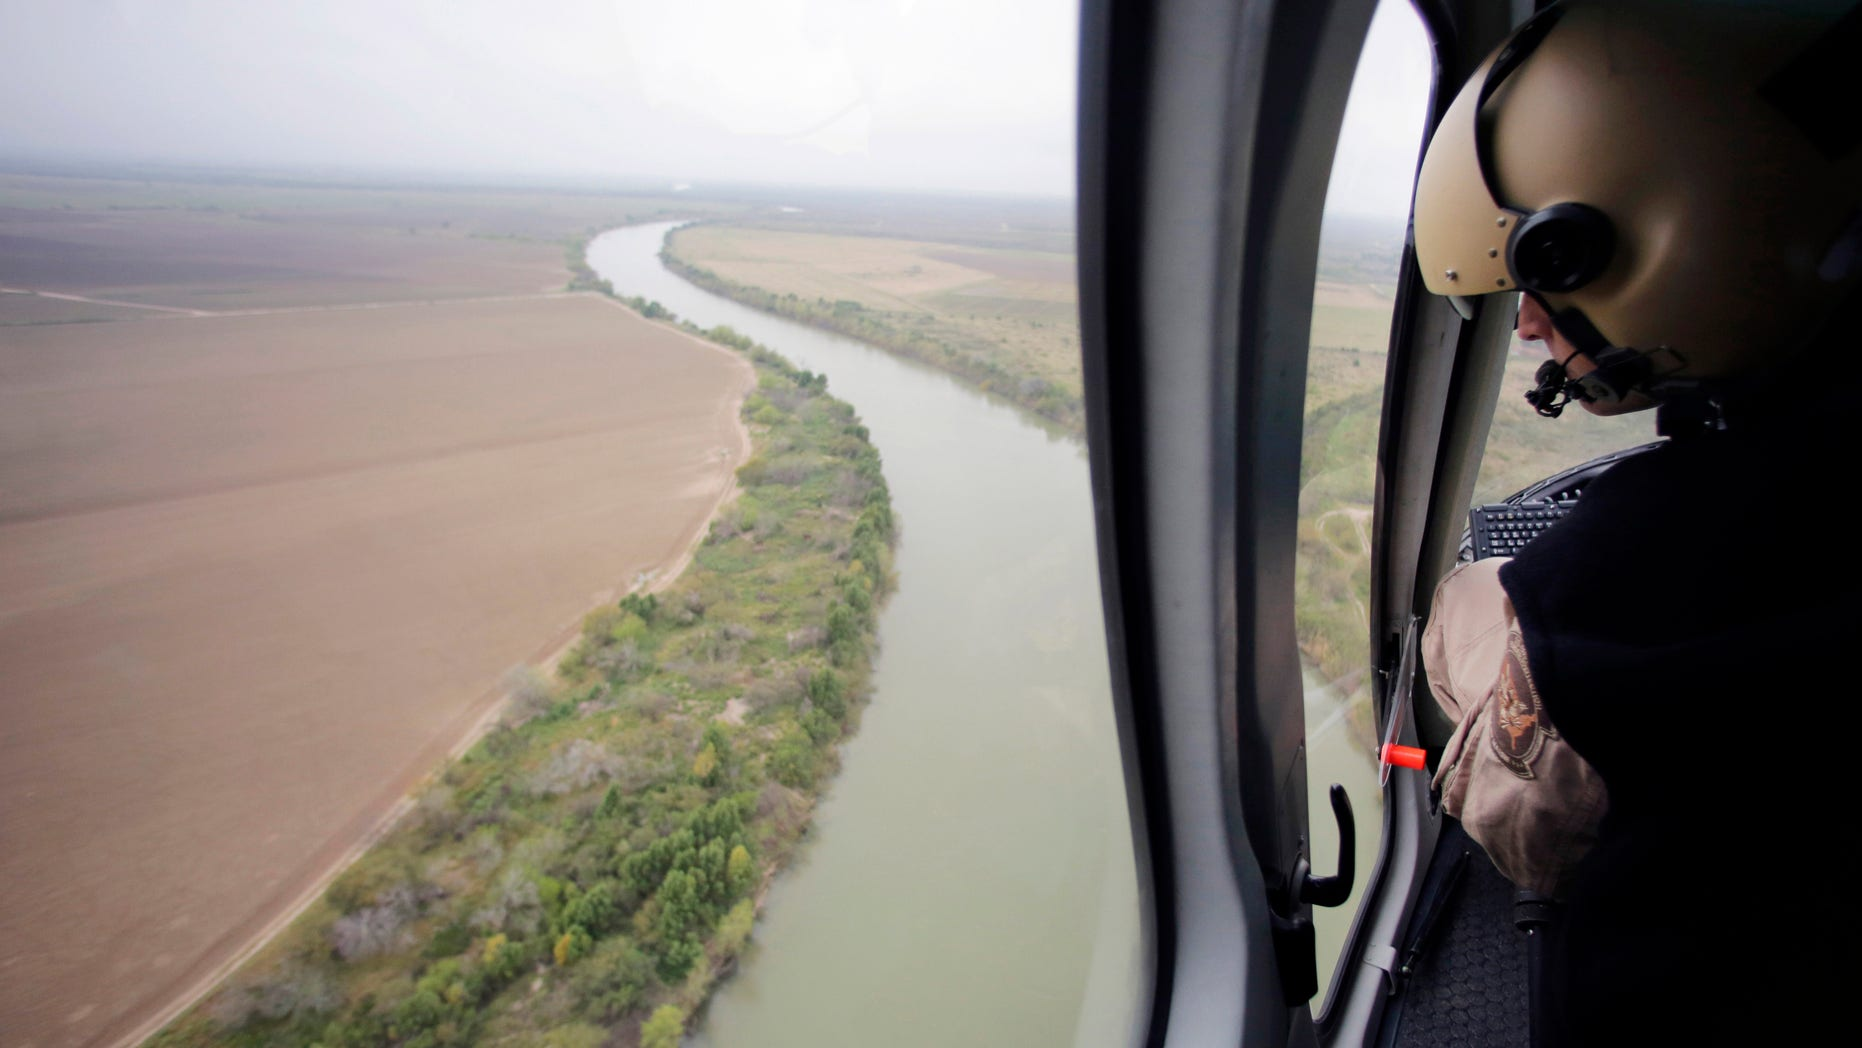 In this Feb. 24, 2015 photo, U.S. Customs and Border Protection Air and Marine agents patrol along the Rio Grande on the Texas-Mexico border near Rio Grande City, Texas. Drowning deaths have spiked since last fall as a surge of law enforcement along the Mexico border prompts immigrants, desperate to avoid detection by a surge of law enforcement, to choose more dangerous and remote crossings into South Texas. (AP Photo/Eric Gay)